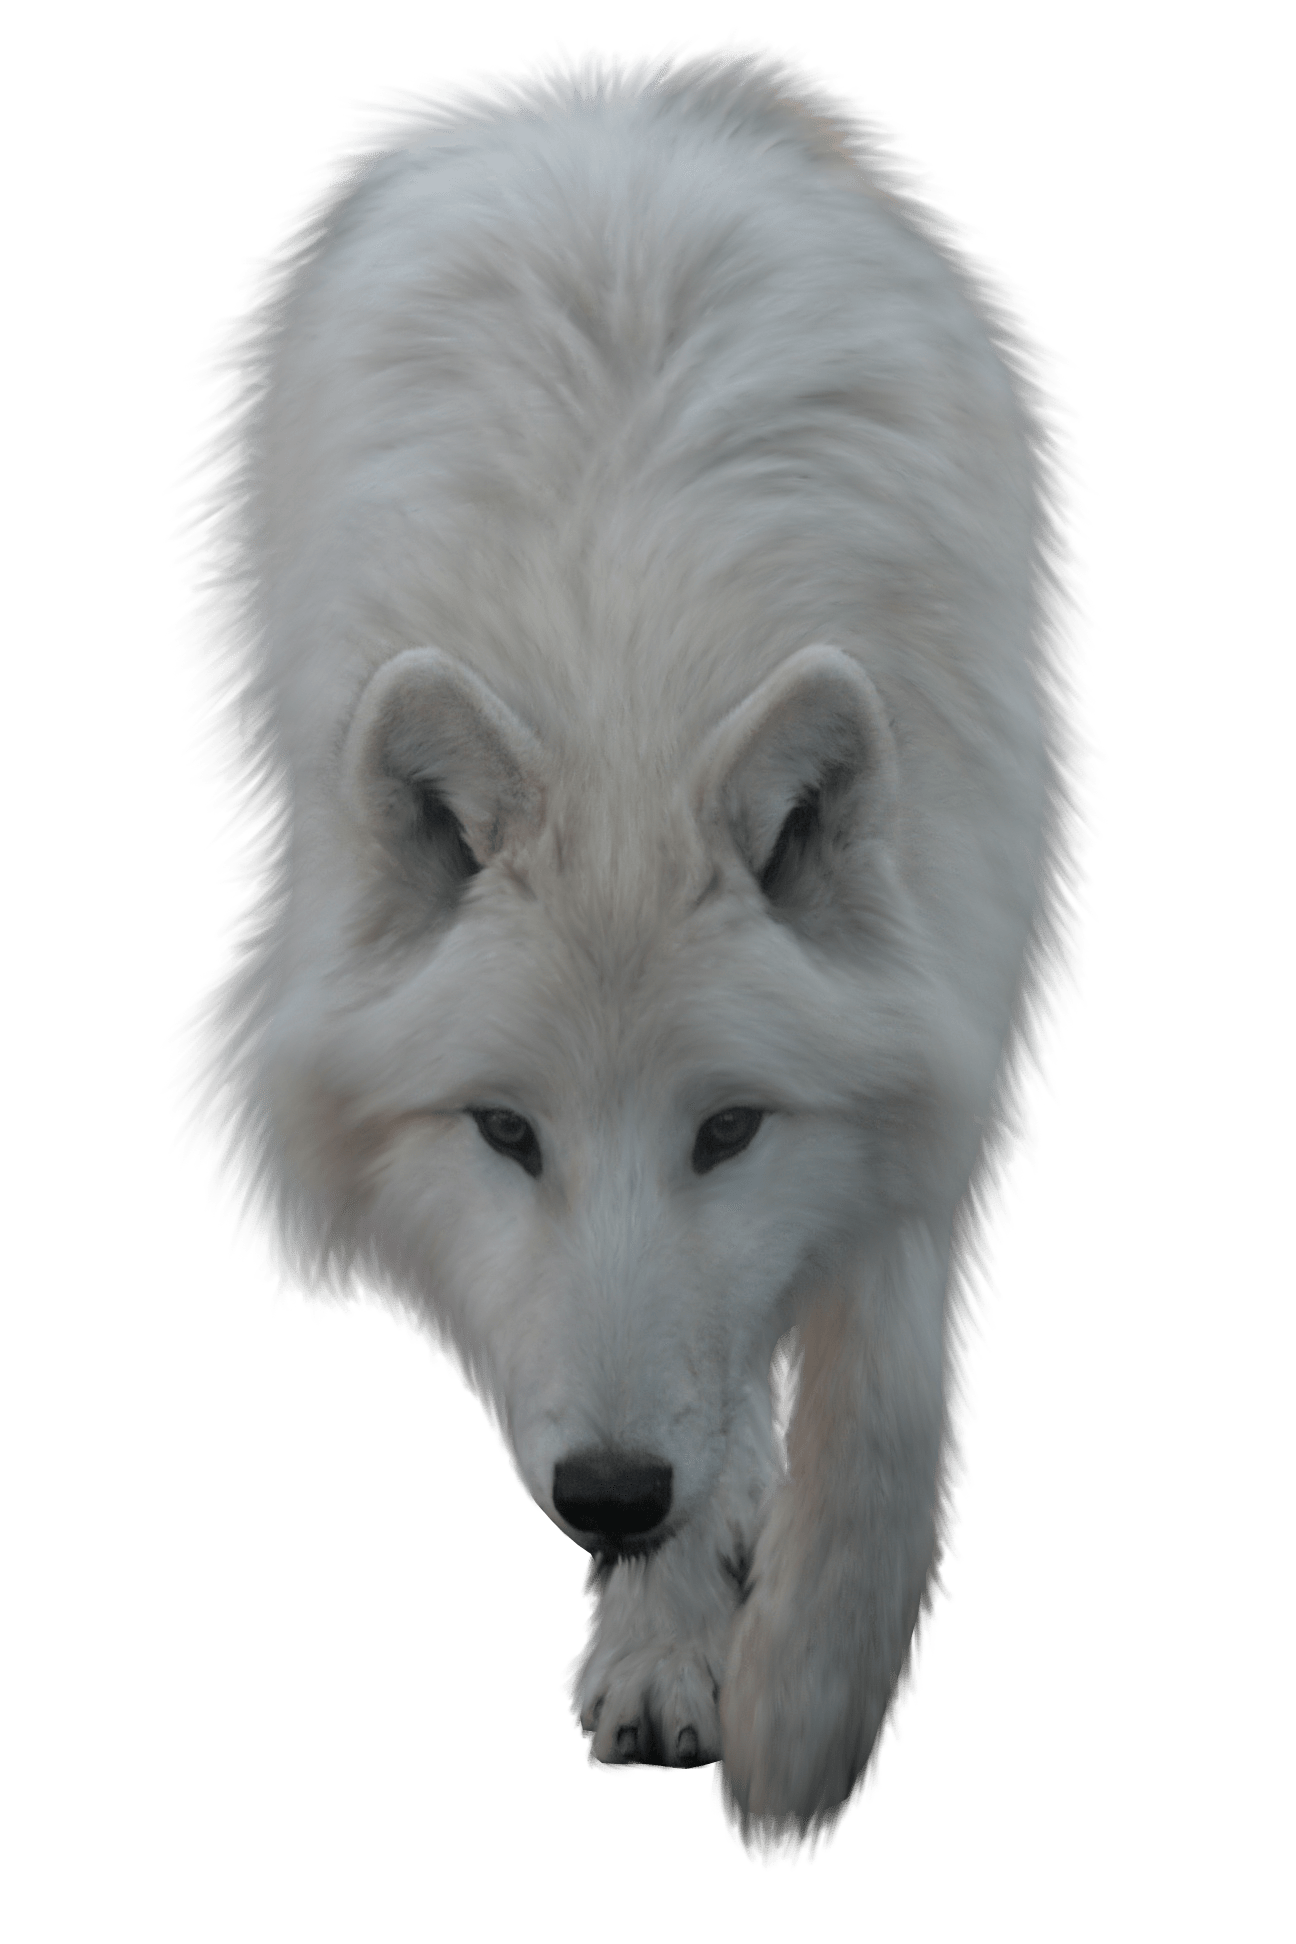 Wolf transparent png. White stickpng animals wolves